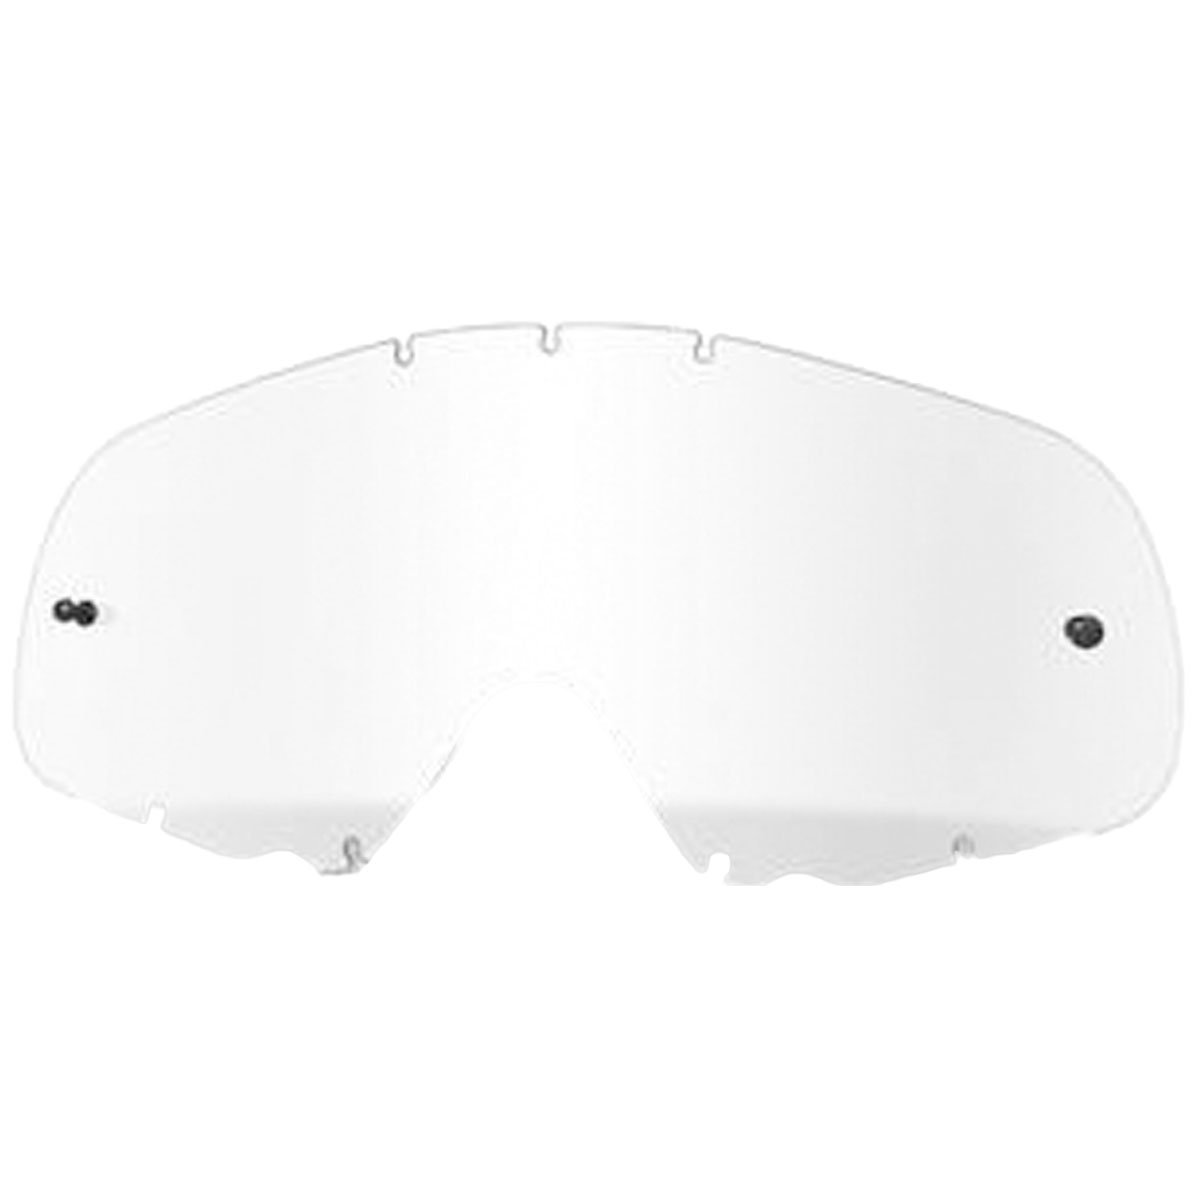 Oakley Crowbar MX Replacement Lens (Clear, One Size)